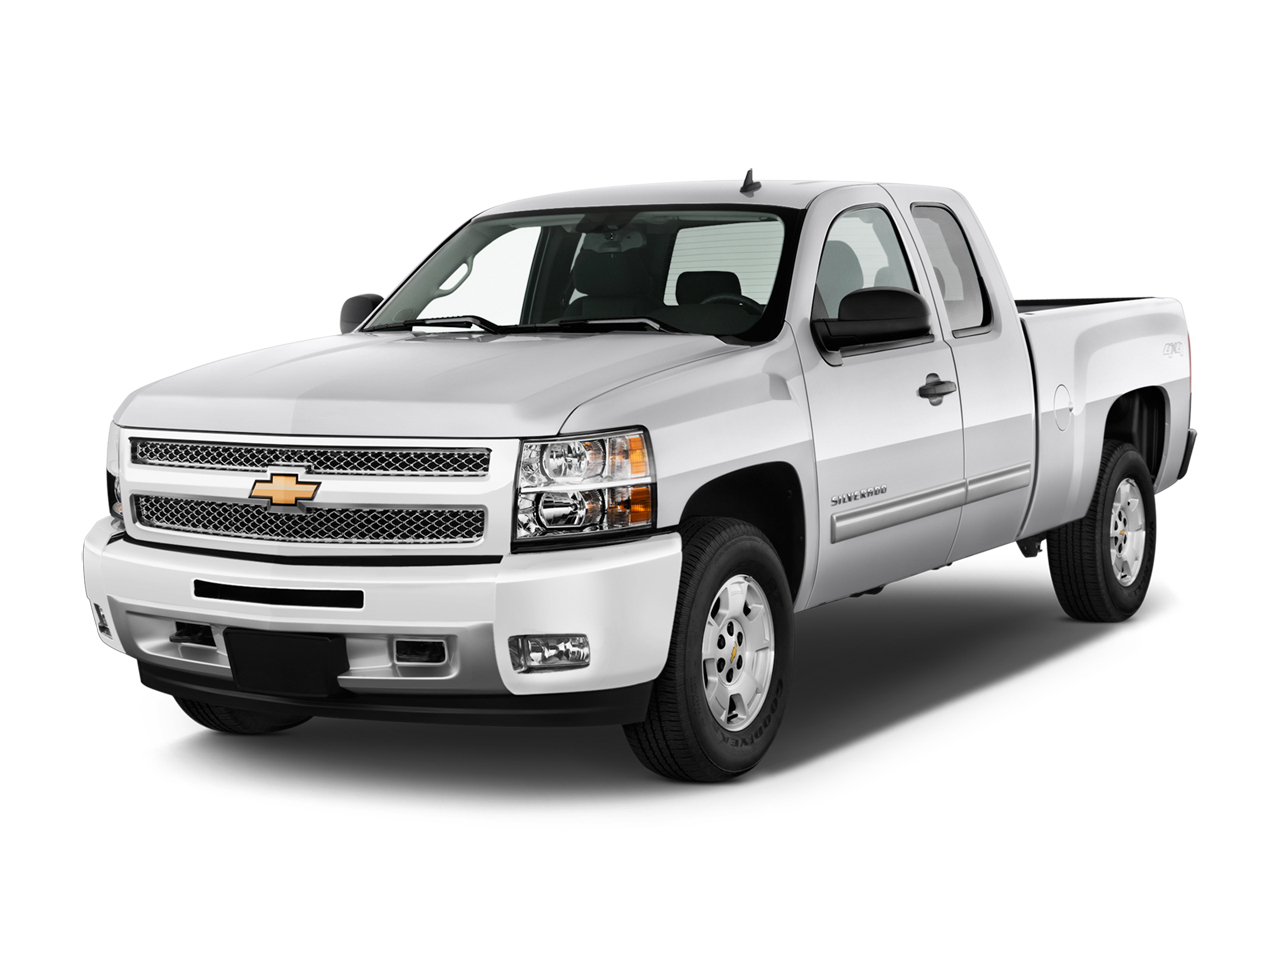 2012 chevrolet silverado 1500 4wd ext cab 157 5 lt angular front exterior view 100379142. Black Bedroom Furniture Sets. Home Design Ideas